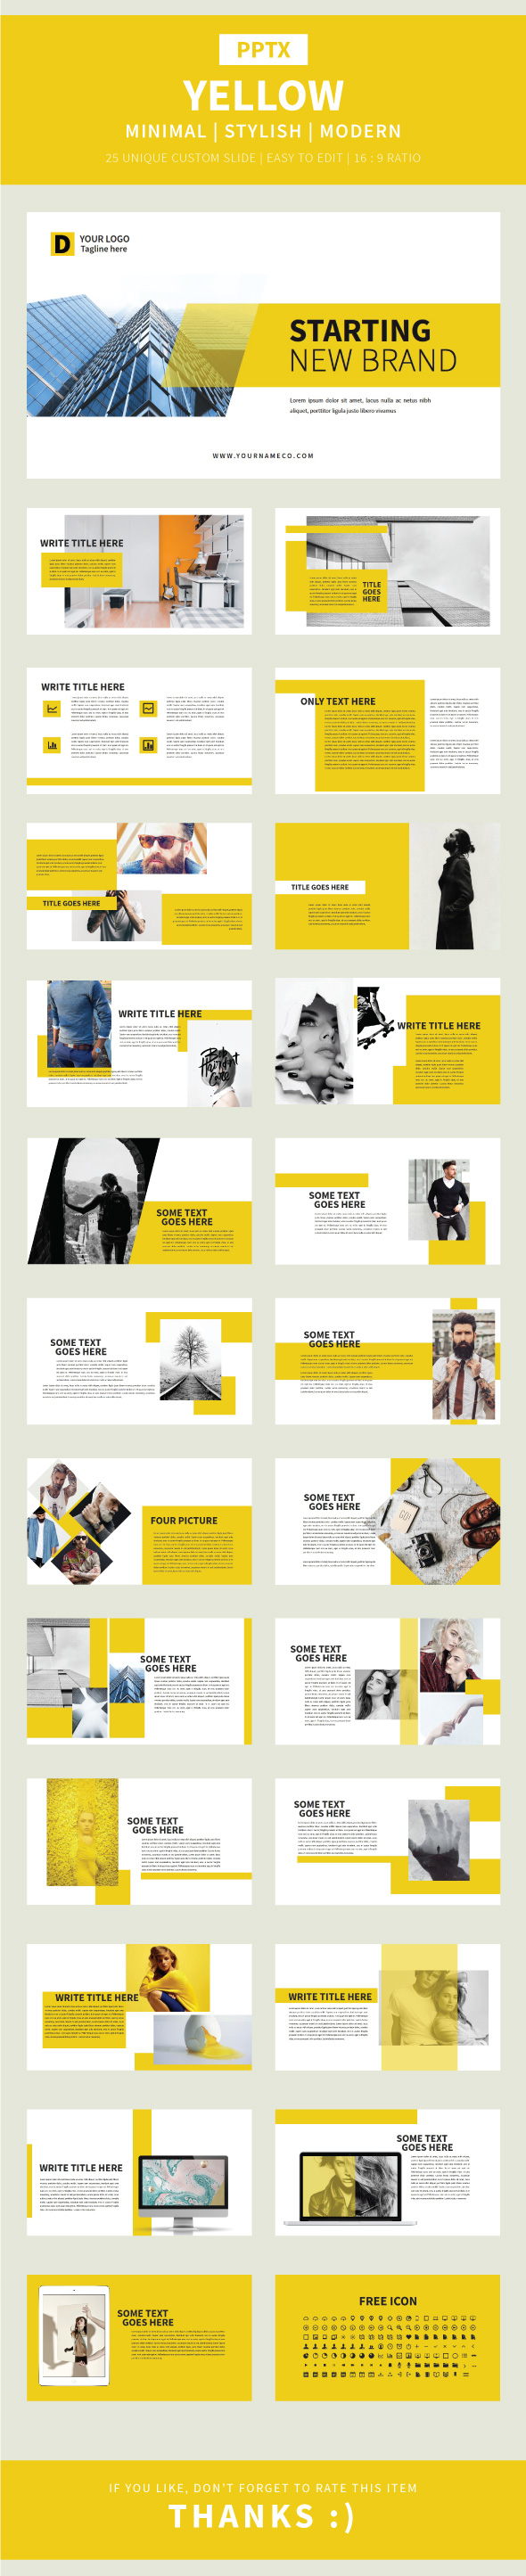 Yellow Pptx Template - Finance PowerPoint Templates